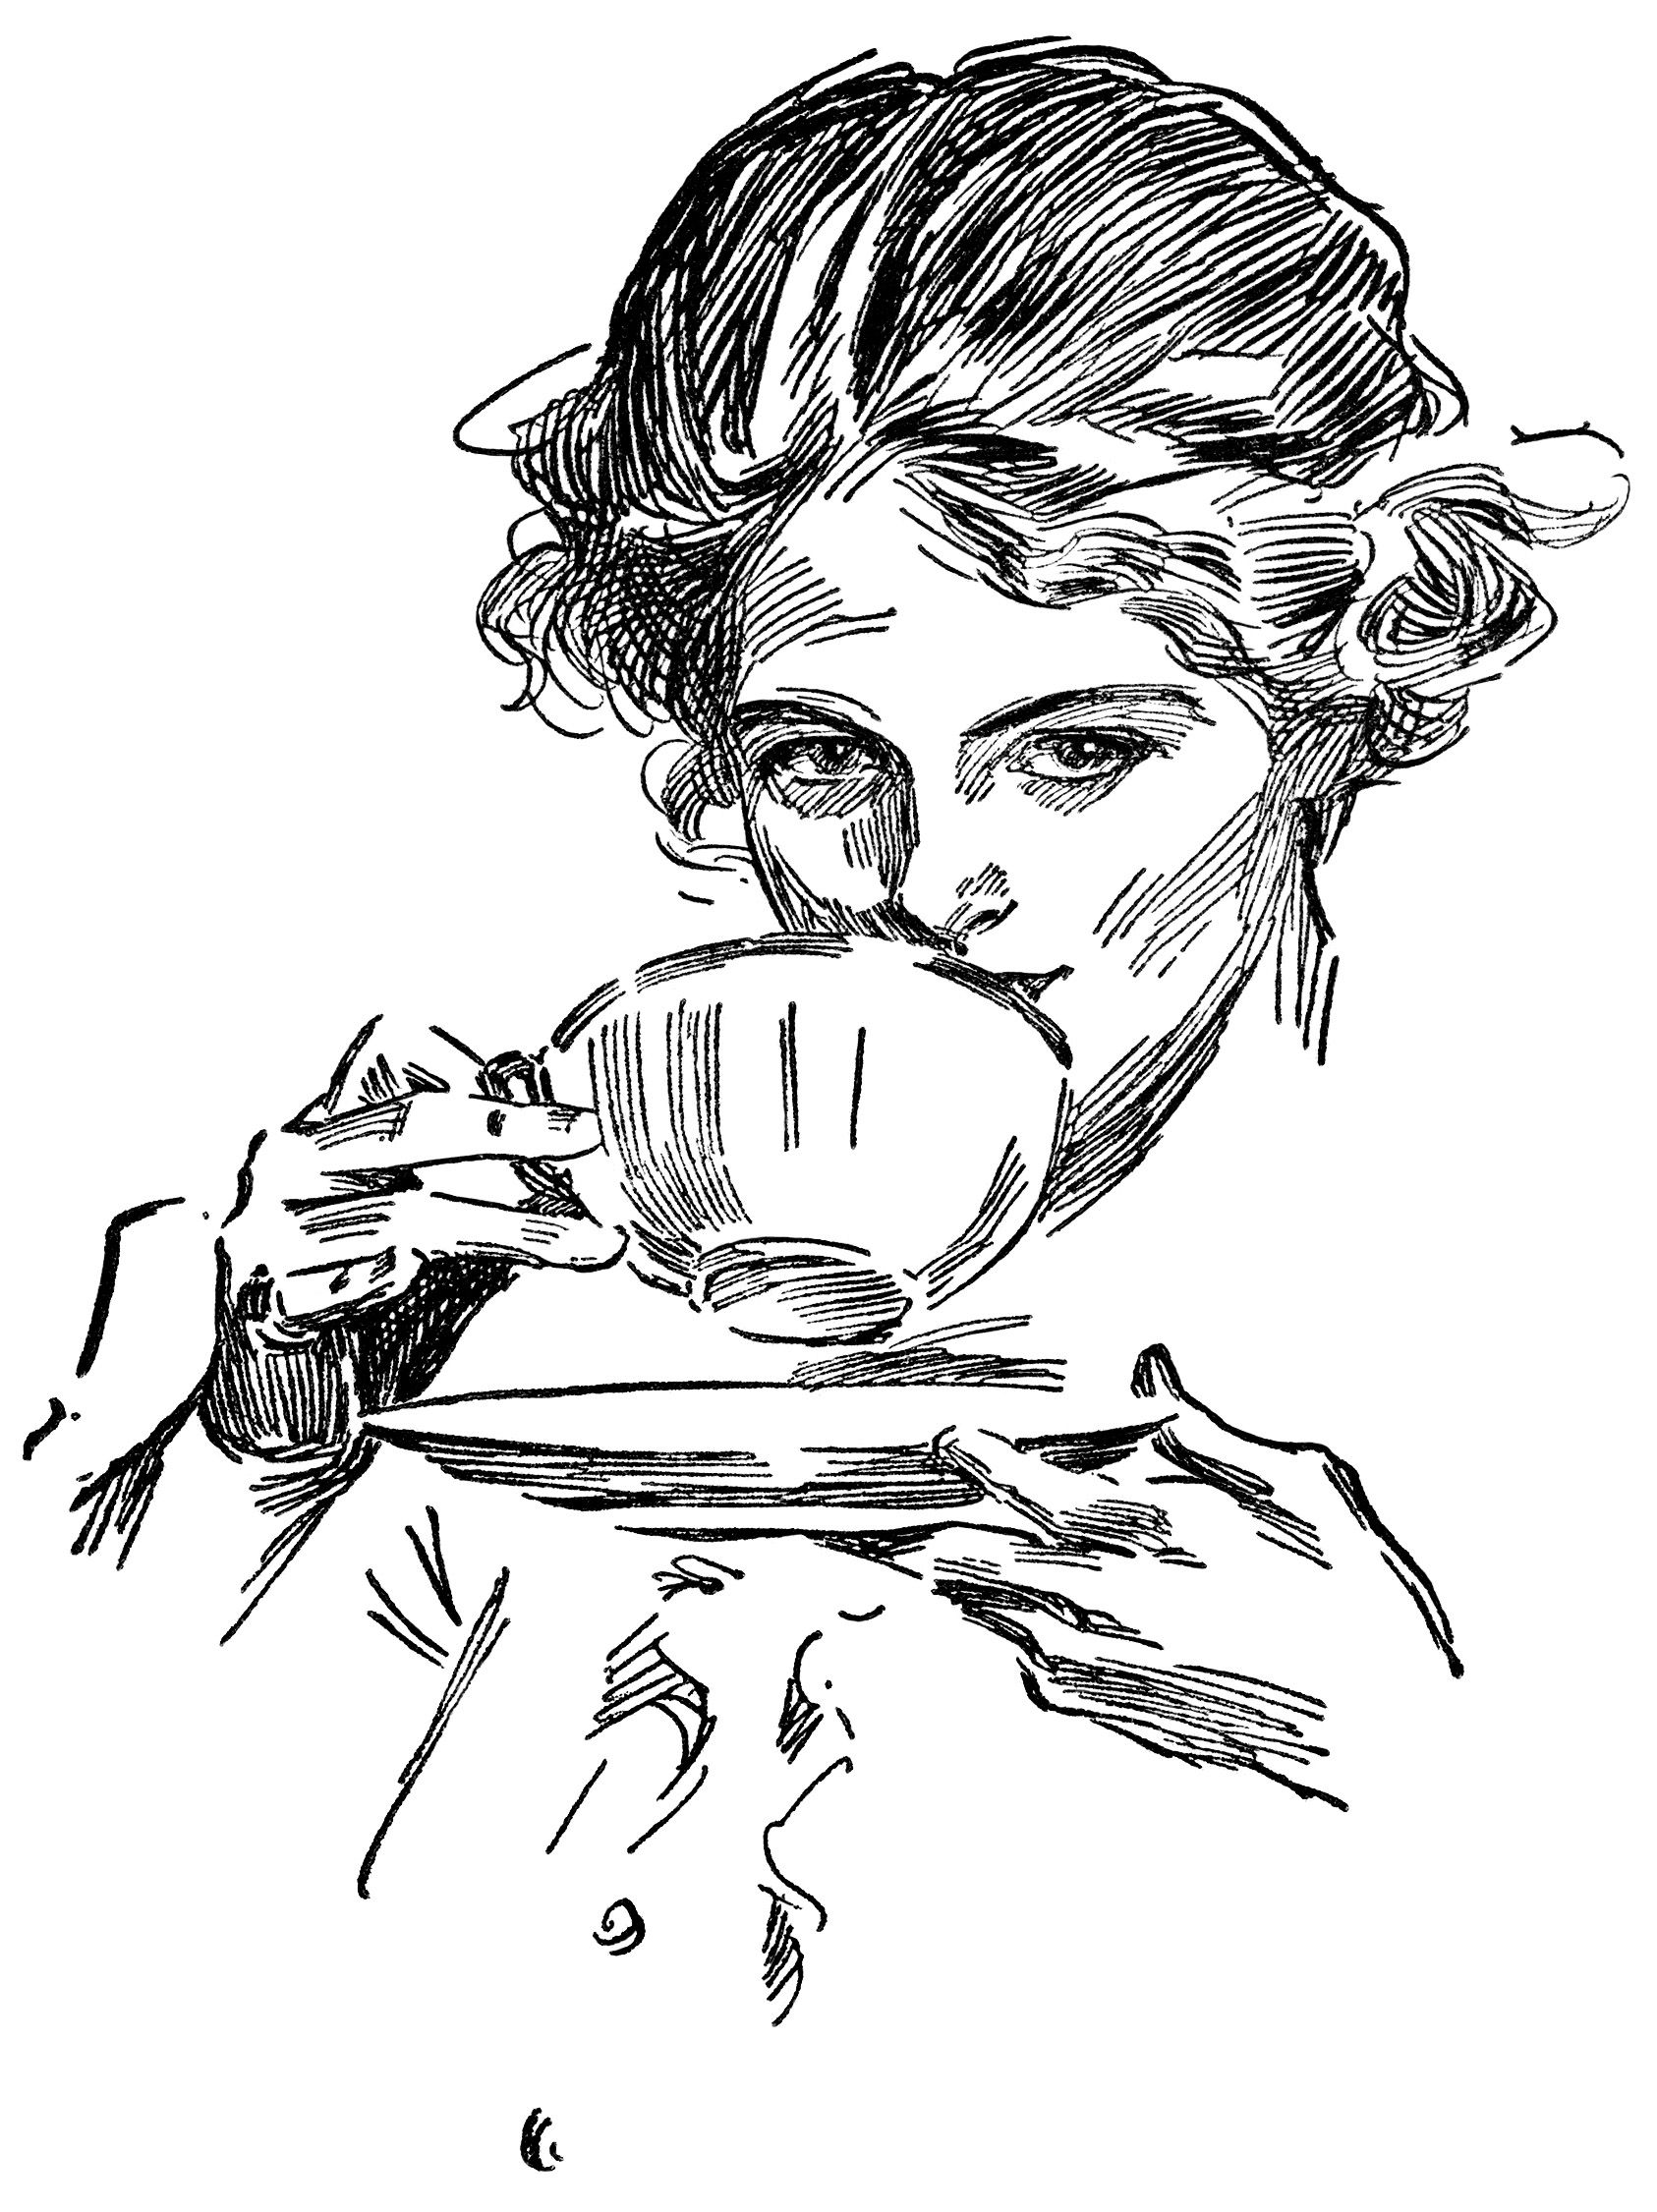 Woman remembers clipart image freeuse library lady drinking tea, tea time graphics, vintage lady clip art ... image freeuse library